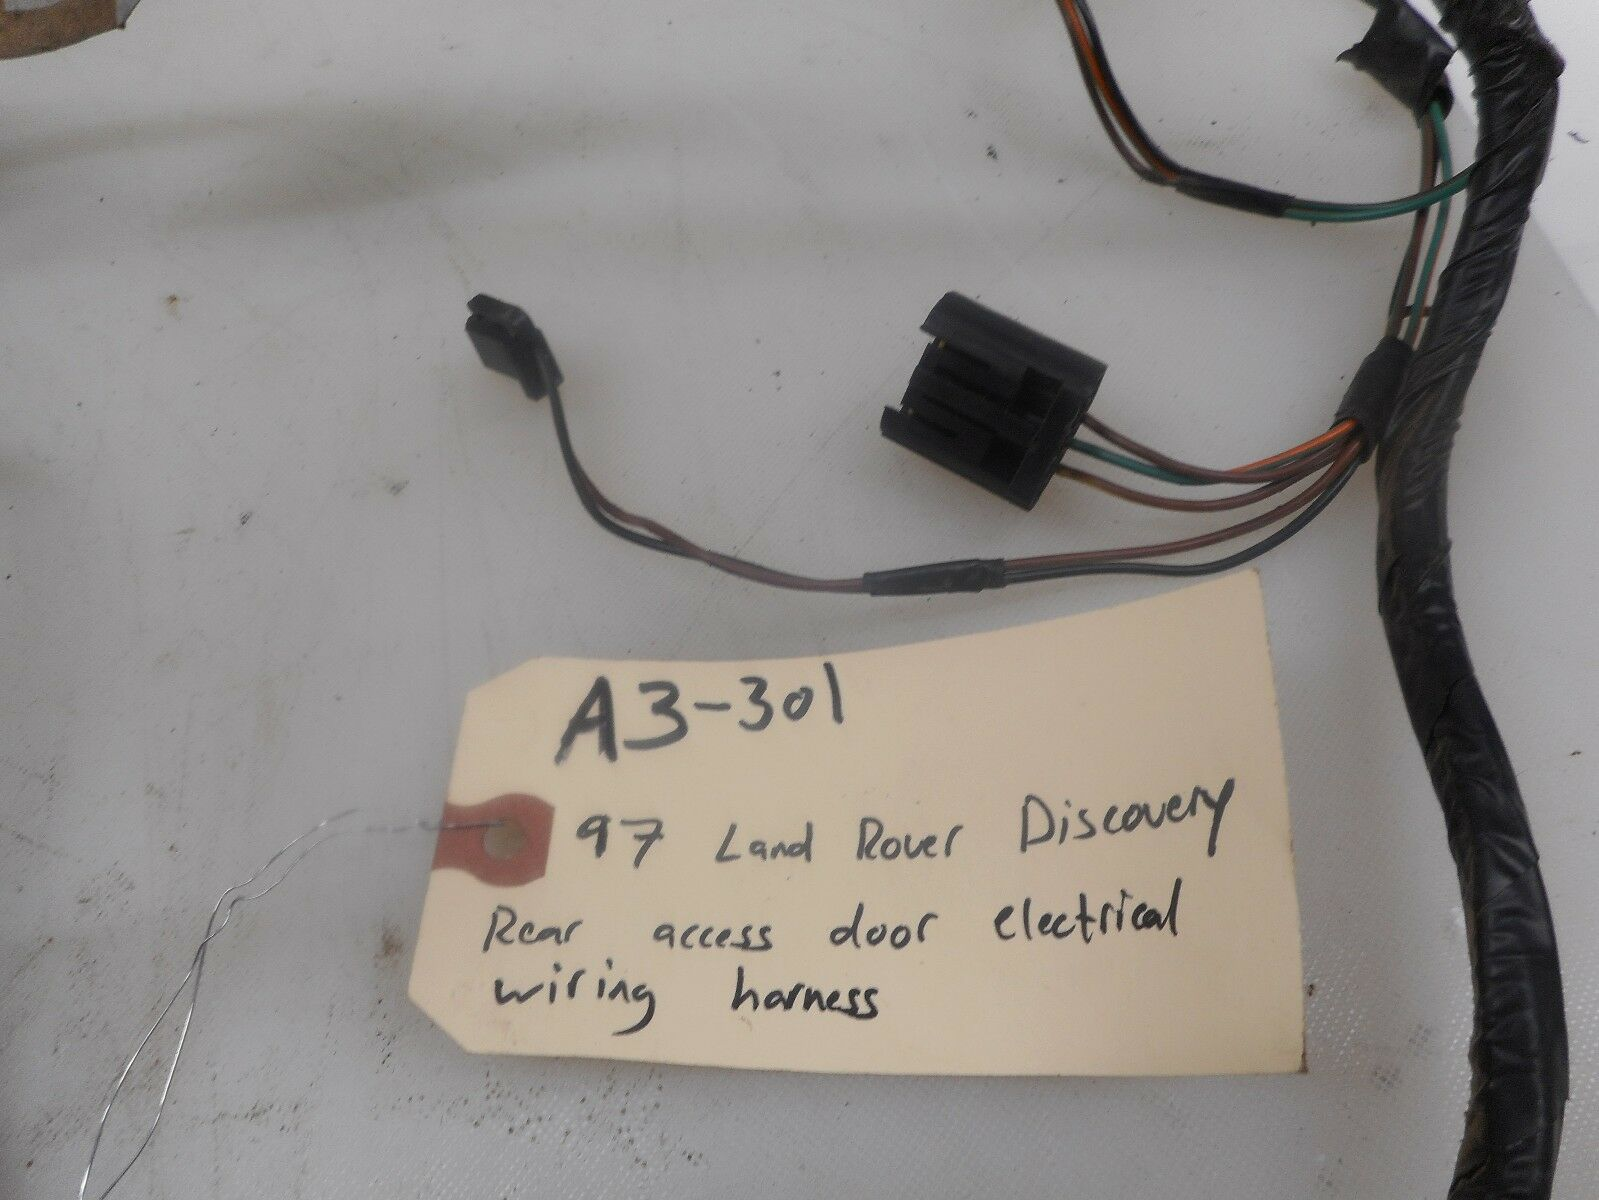 Land Rover Discovery Wiring Harness Schematic Diagrams Enclave Schematics Buick